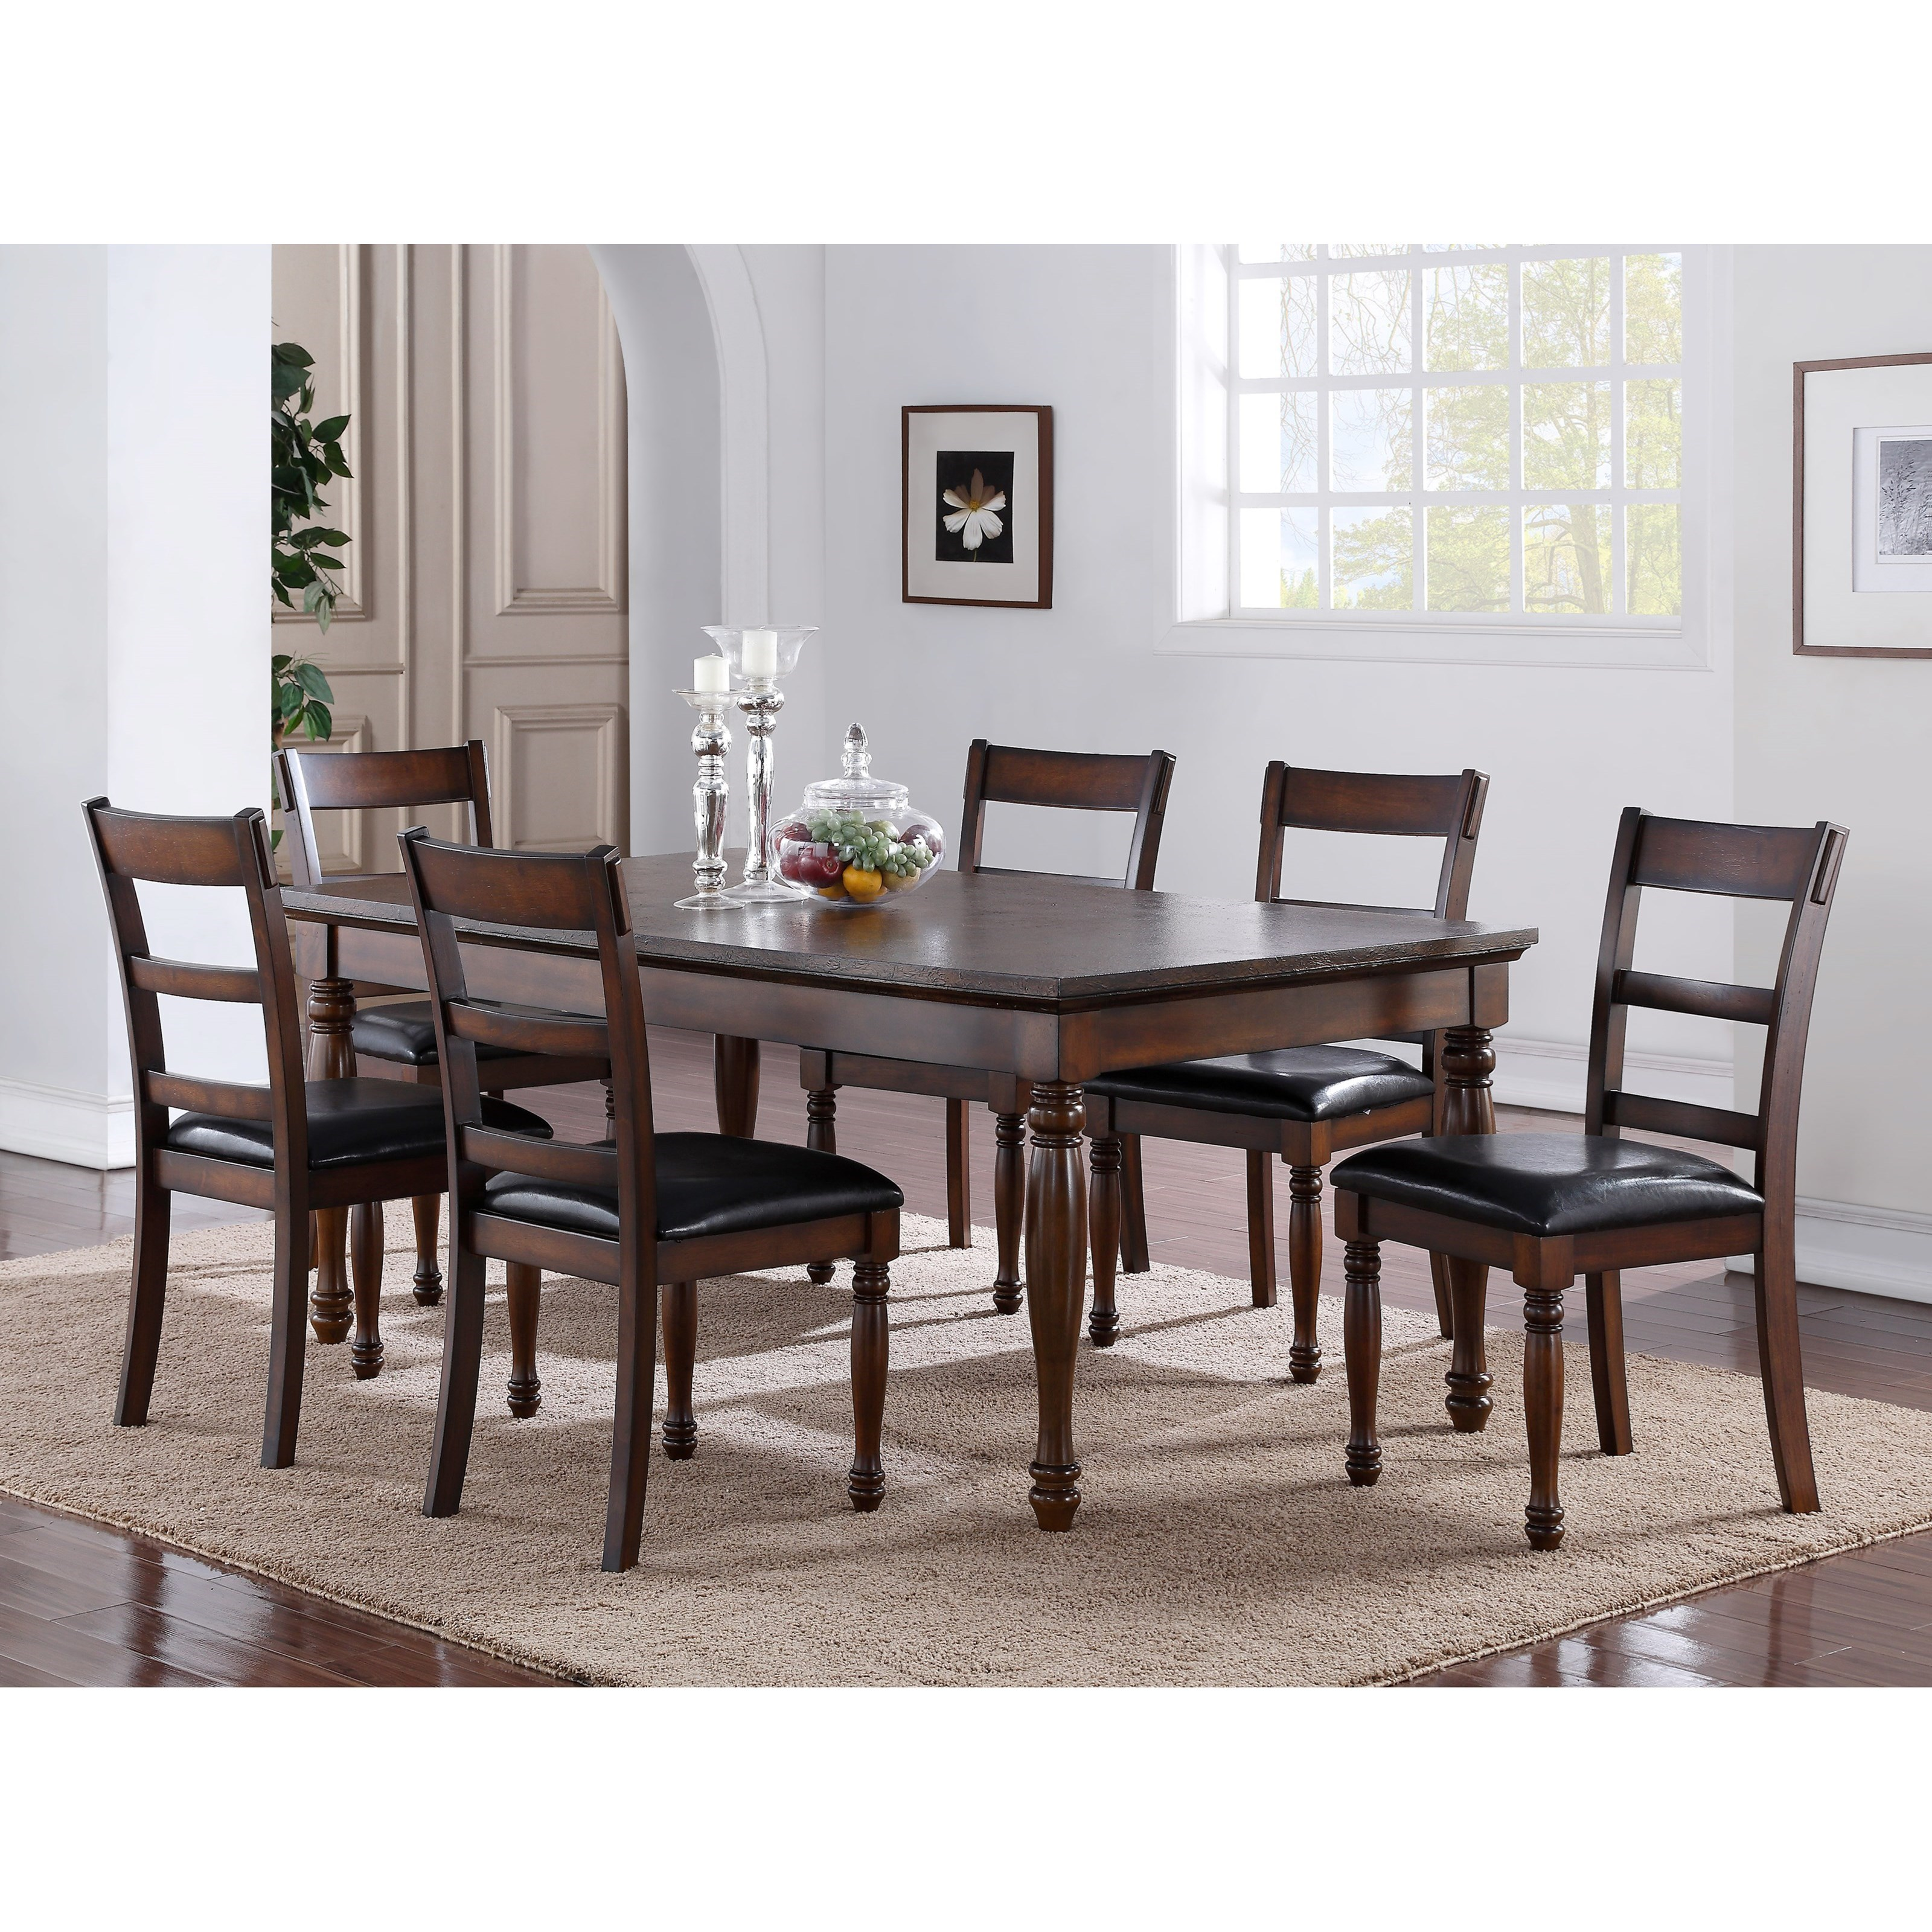 Legends Furniture Breckenridge 7 Piece Table & Chair Set - Item Number: ZBRG-8060D